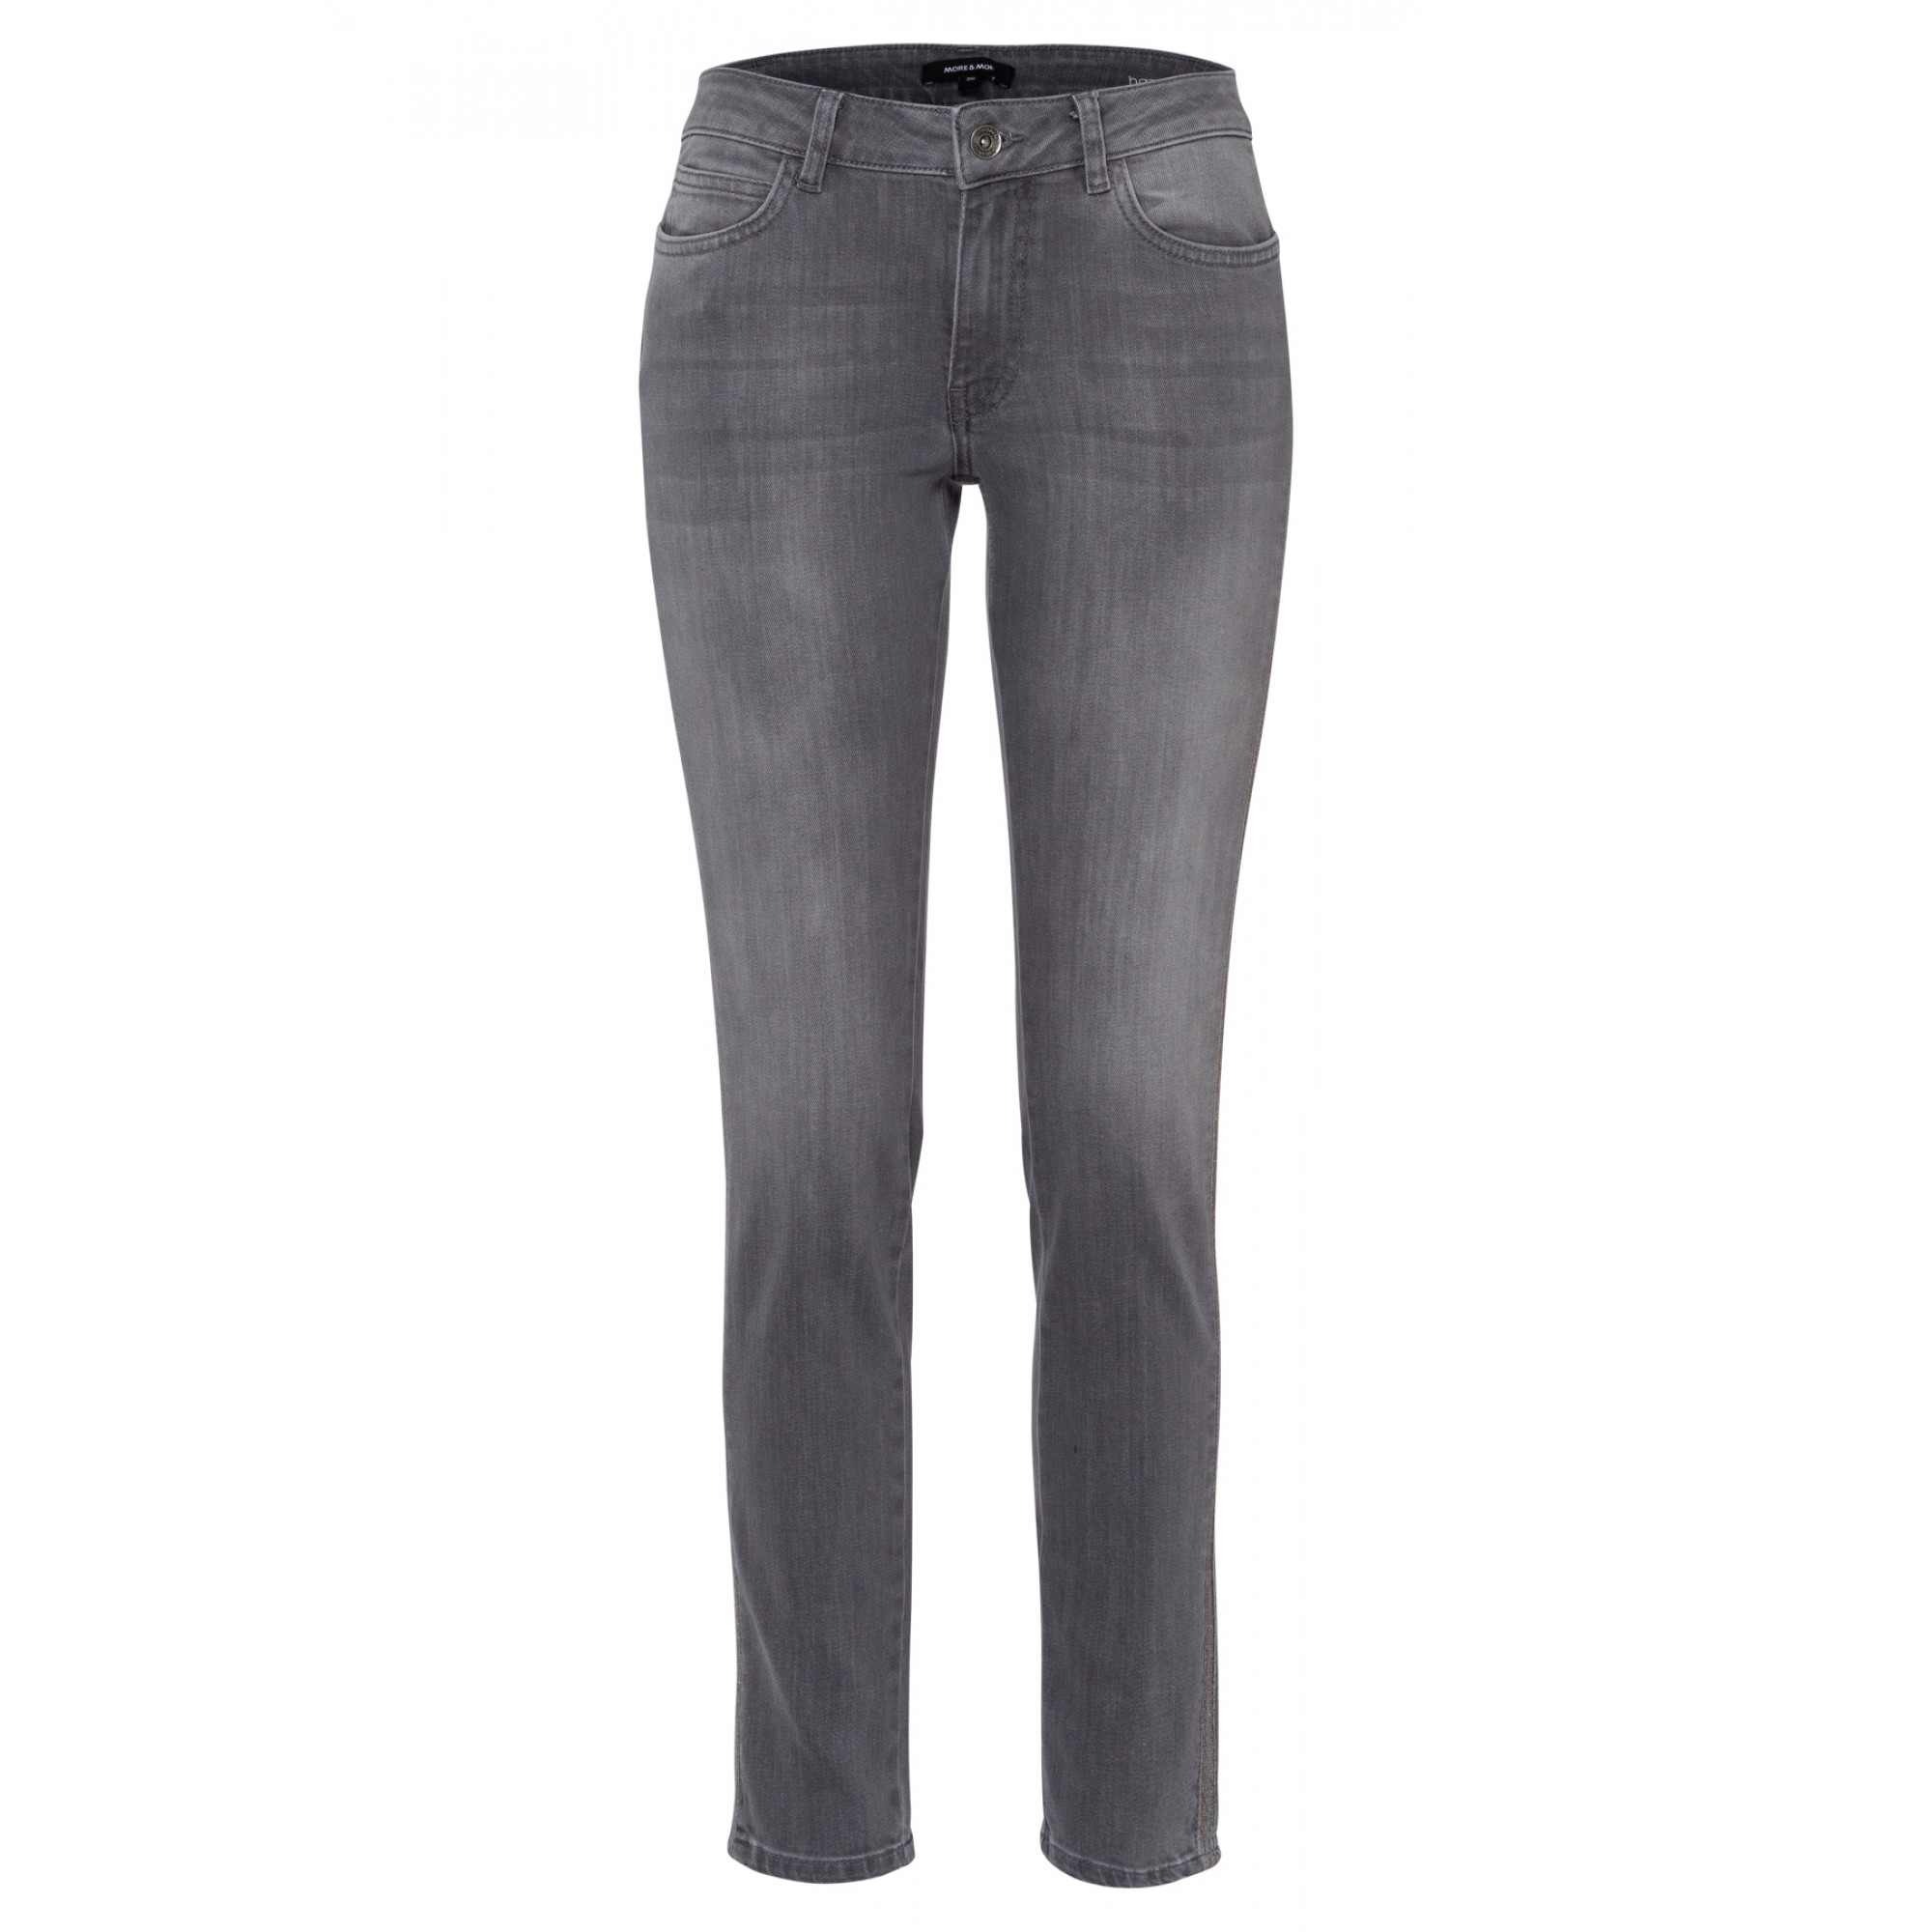 Five Pocket Jeans, grau, Hazel 91824502-0967 2